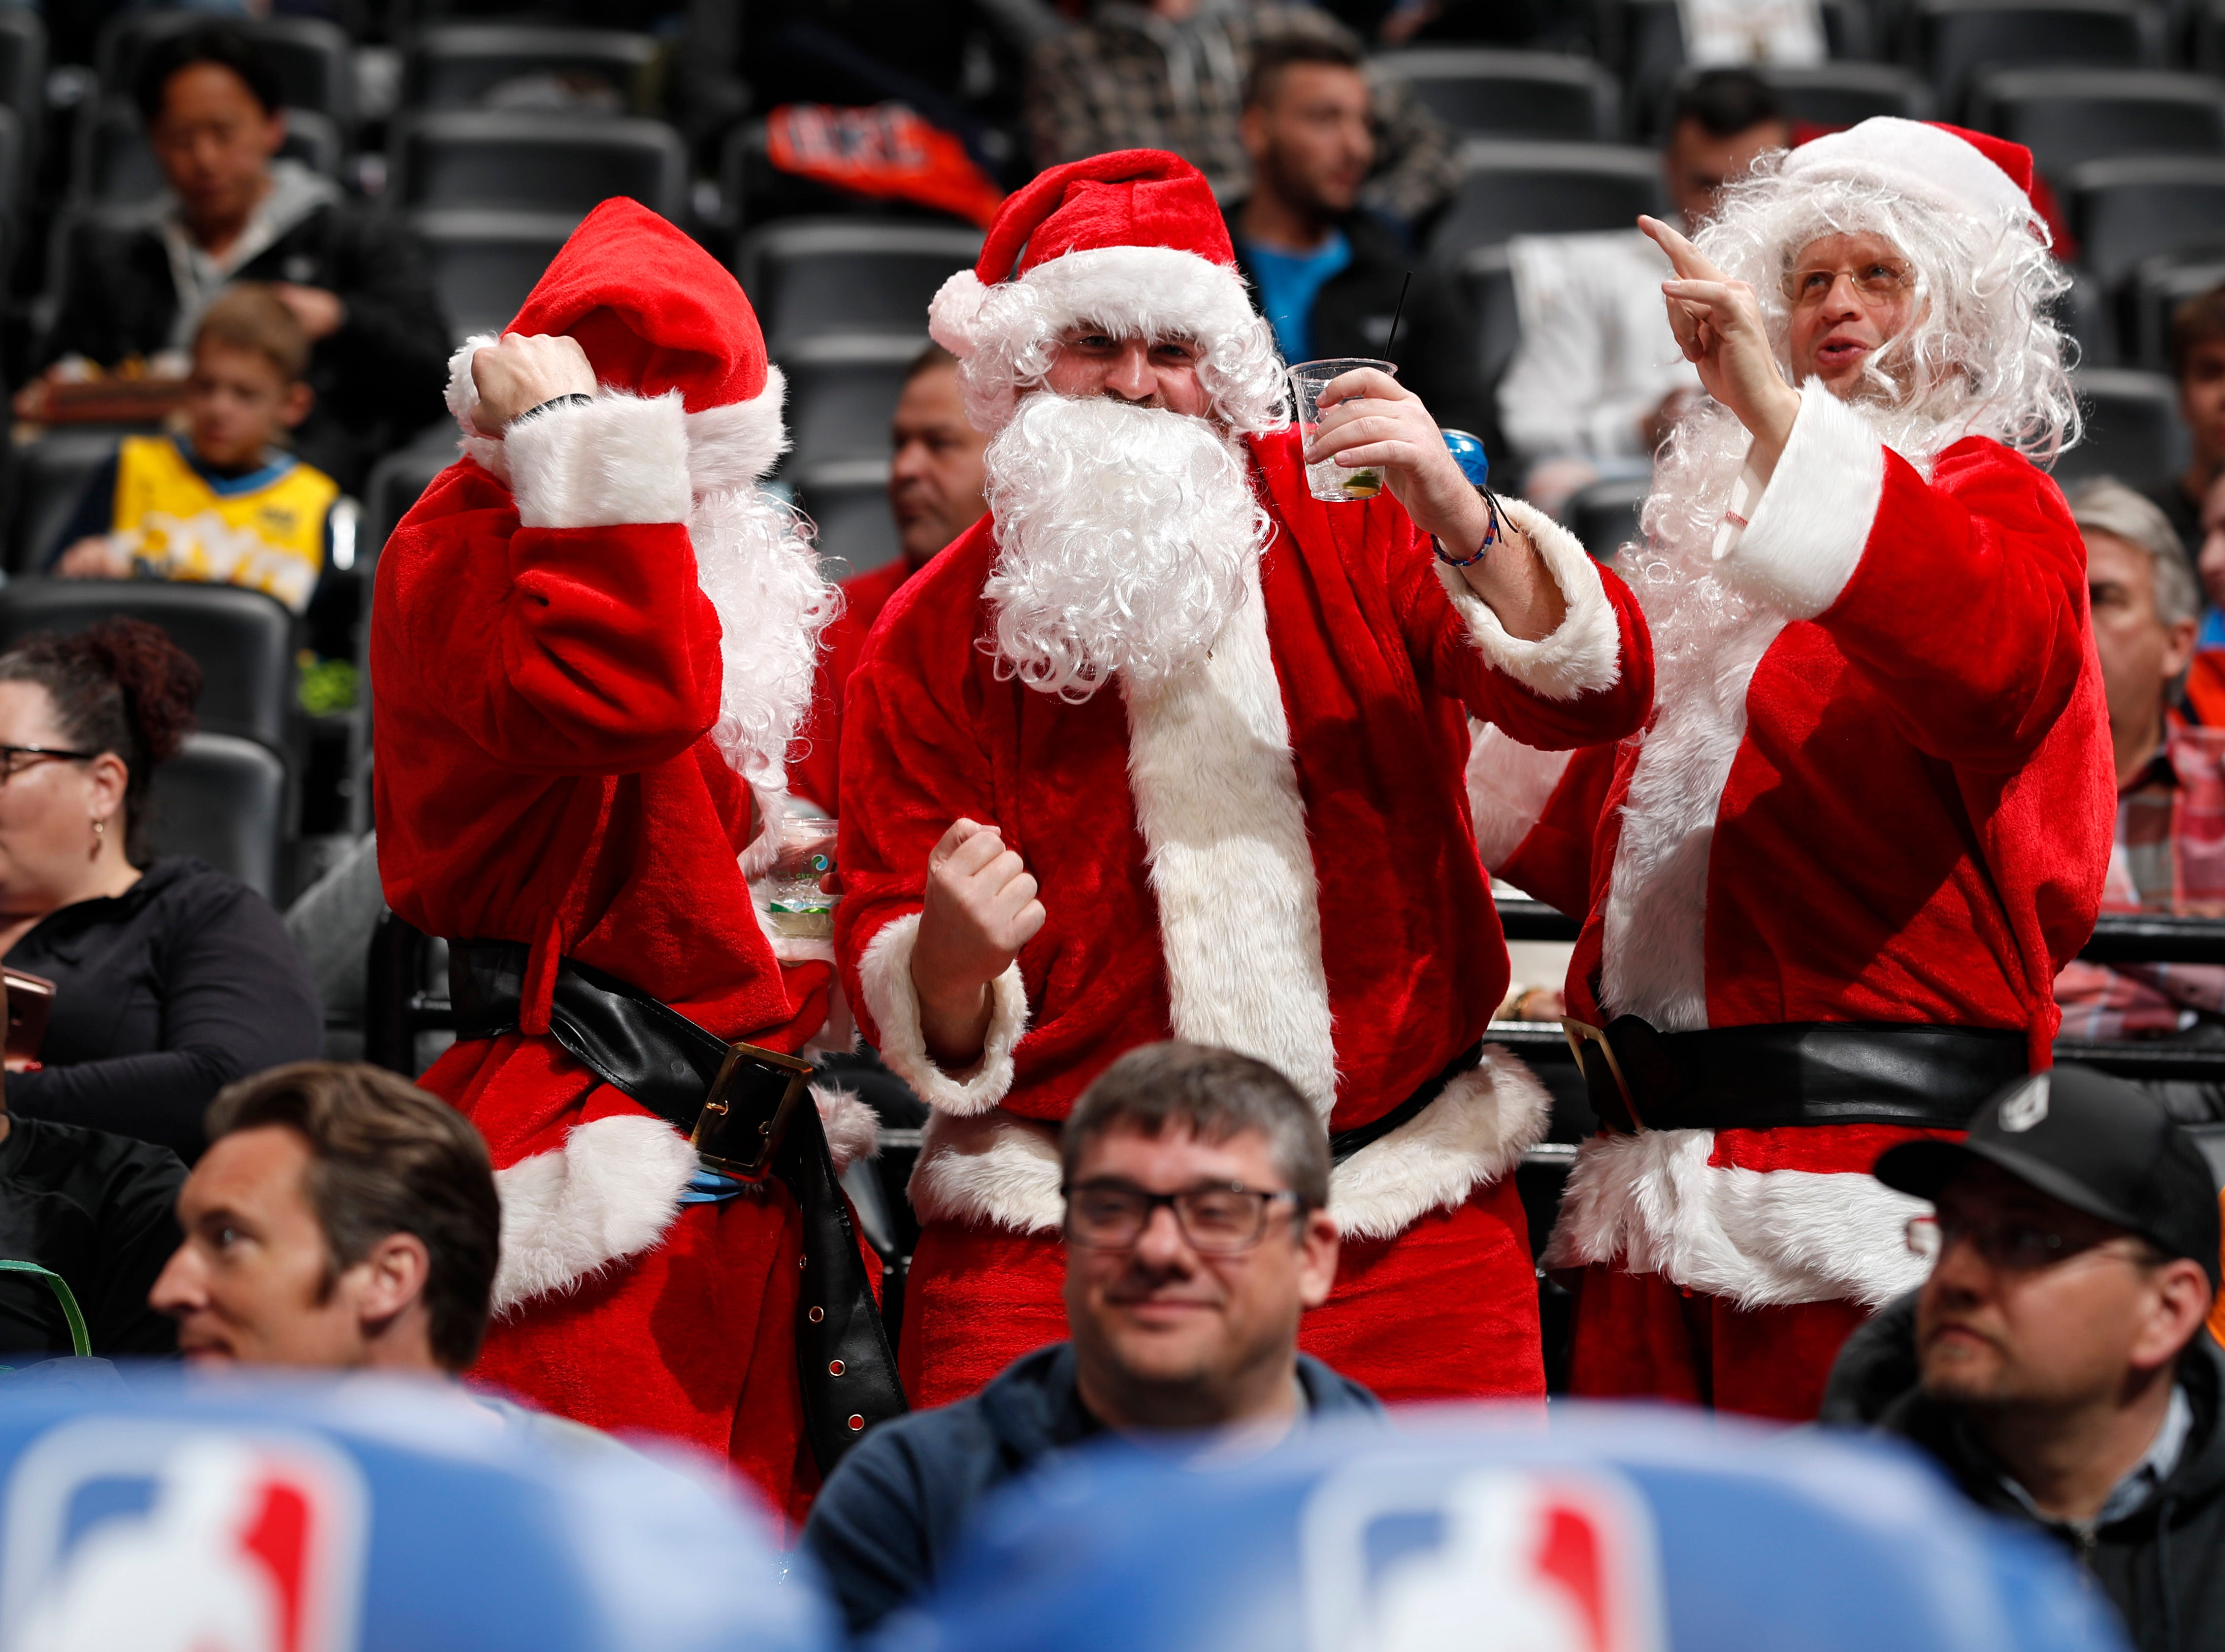 Fans dressed as Santa Claus dance behind the Oklahoma City Thunder bench in the first half of an NBA basketball game against the Denver Nuggets Friday, Dec. 14, 2018, in Denver.